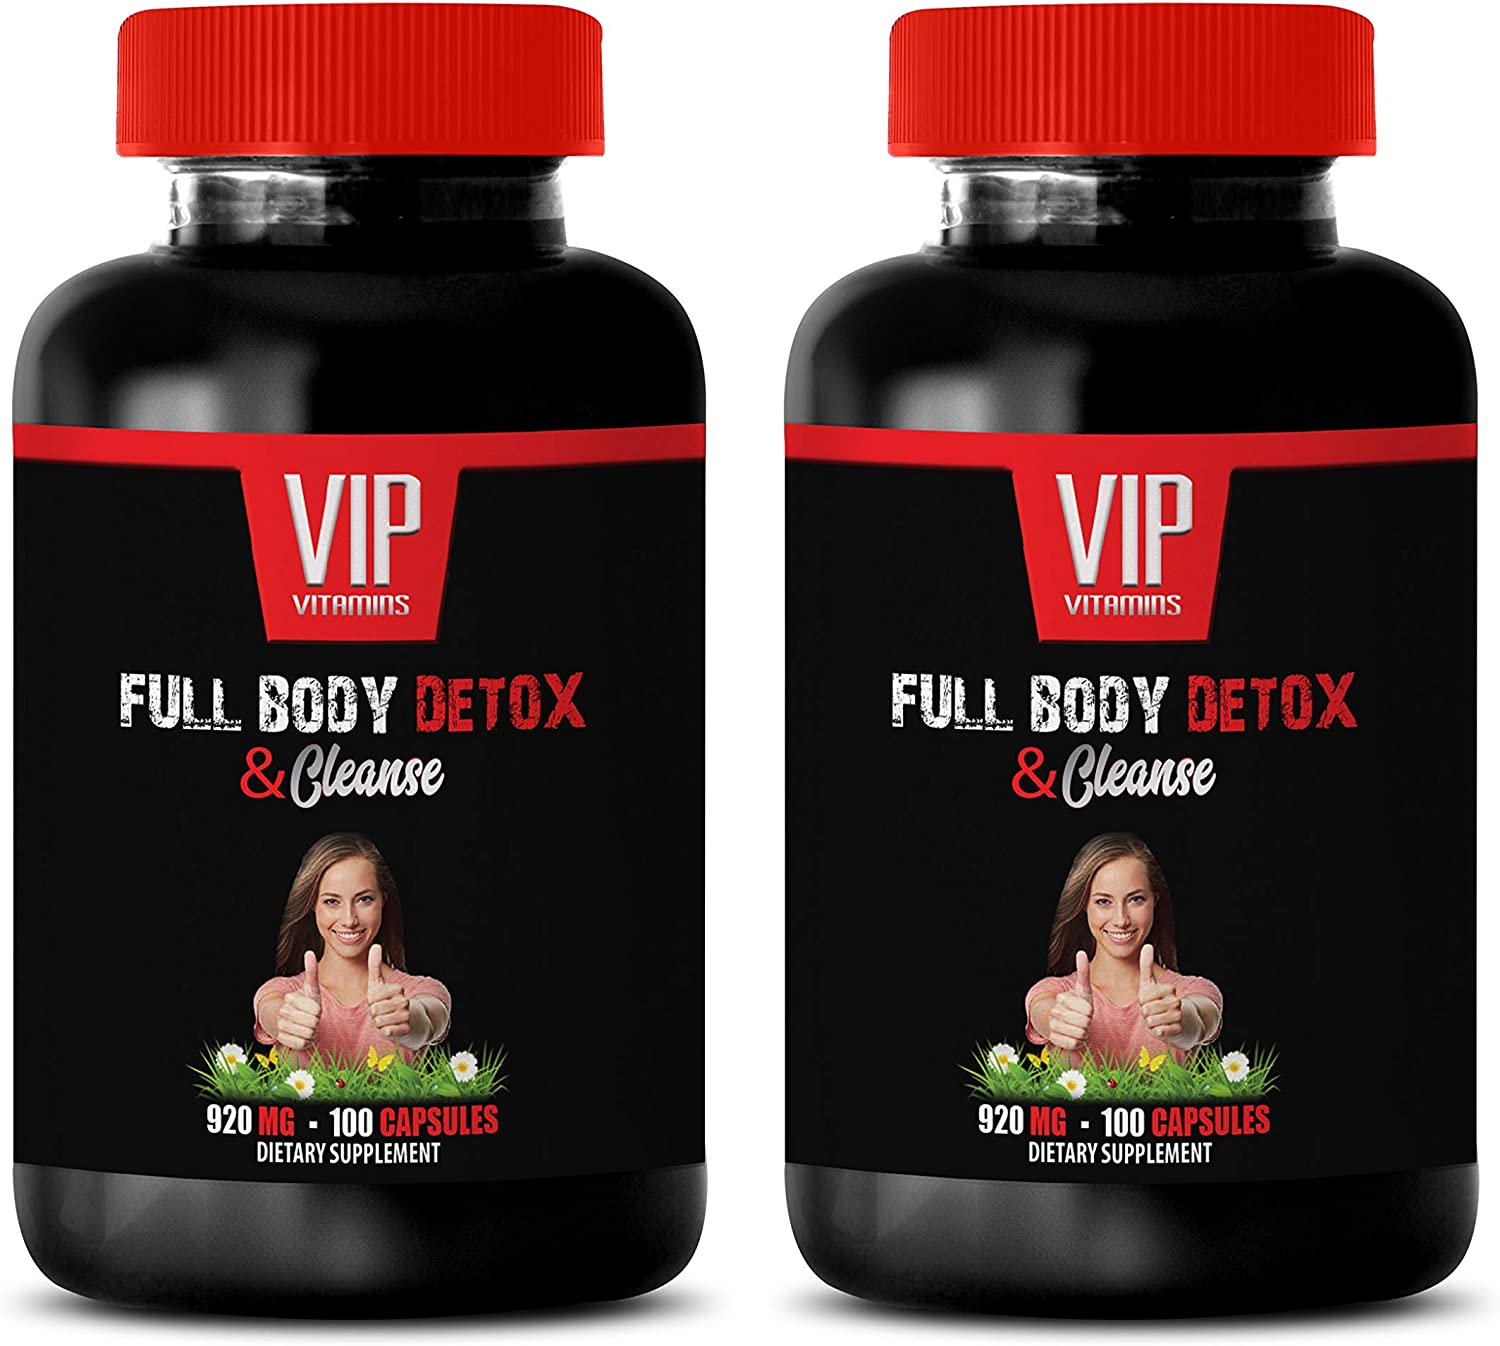 Body Detox Formula - Max 76% OFF Tulsa Mall Full and Thistle Milk Cleanse